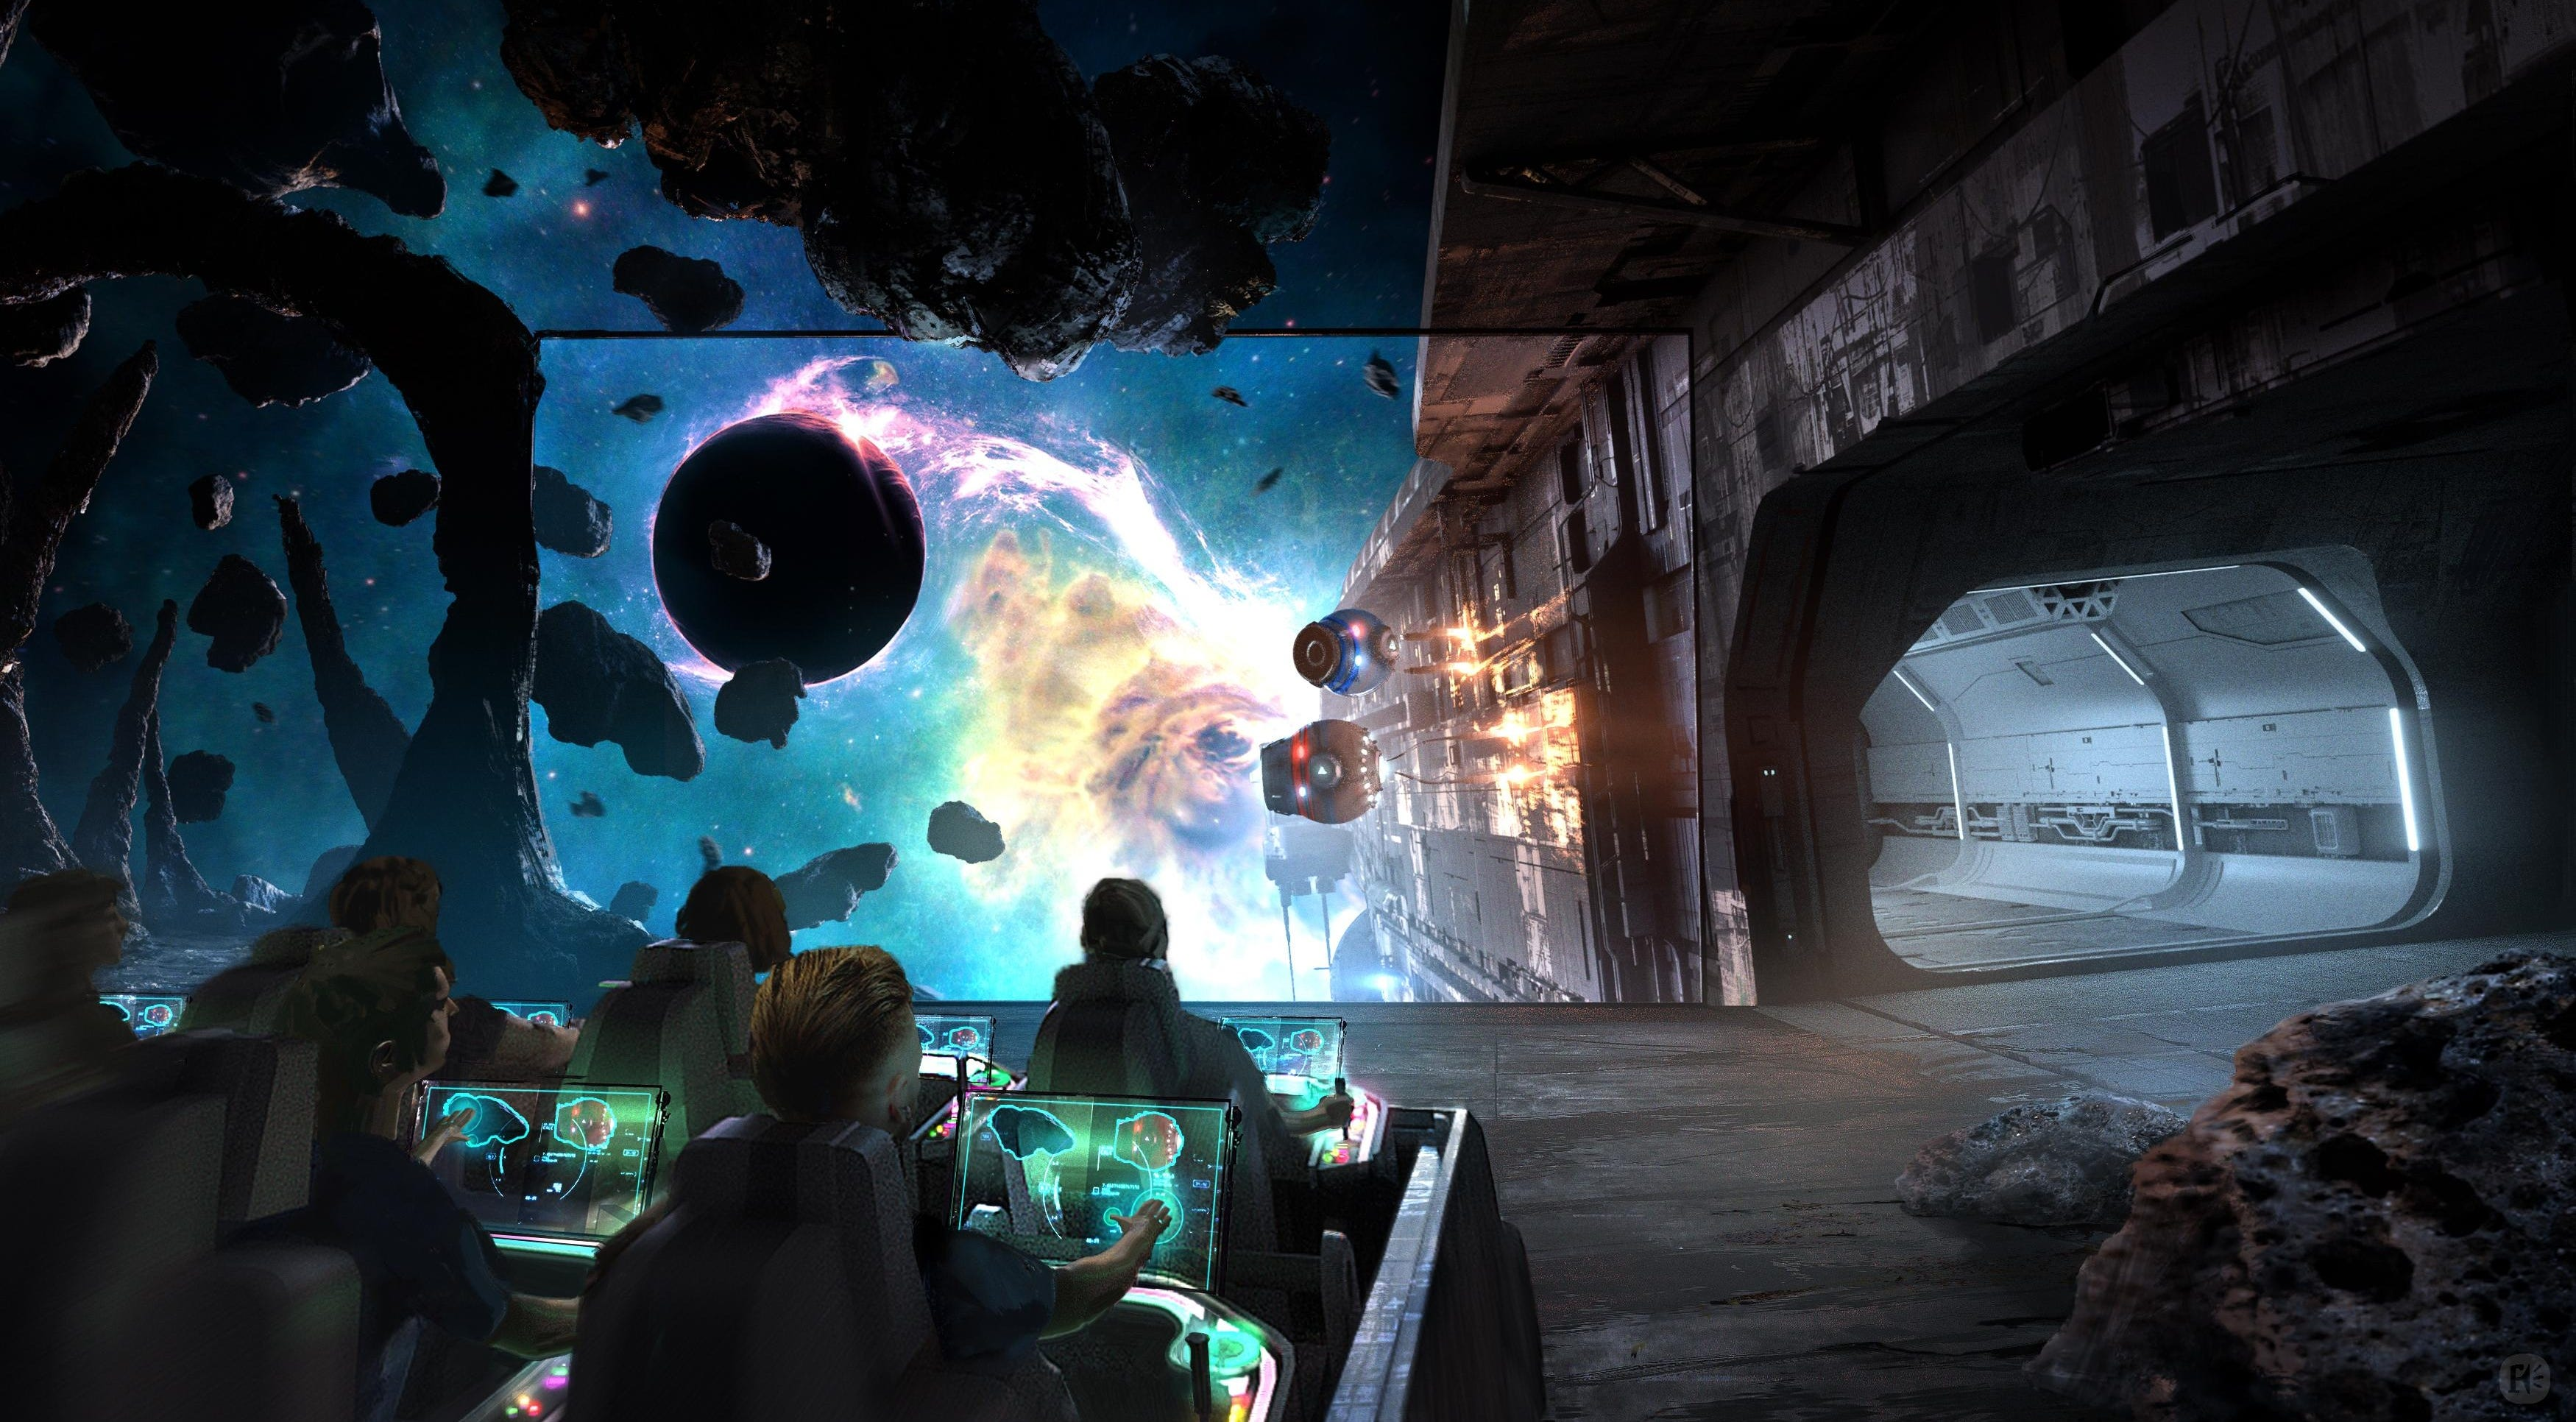 CAVU Designwerks and Framestore dreamed up Adventure Machine, an interactive dark ride in which passengers aboard automated, trackless vehicles would be able to control the motion of the vehicles using shooters or other input devices.